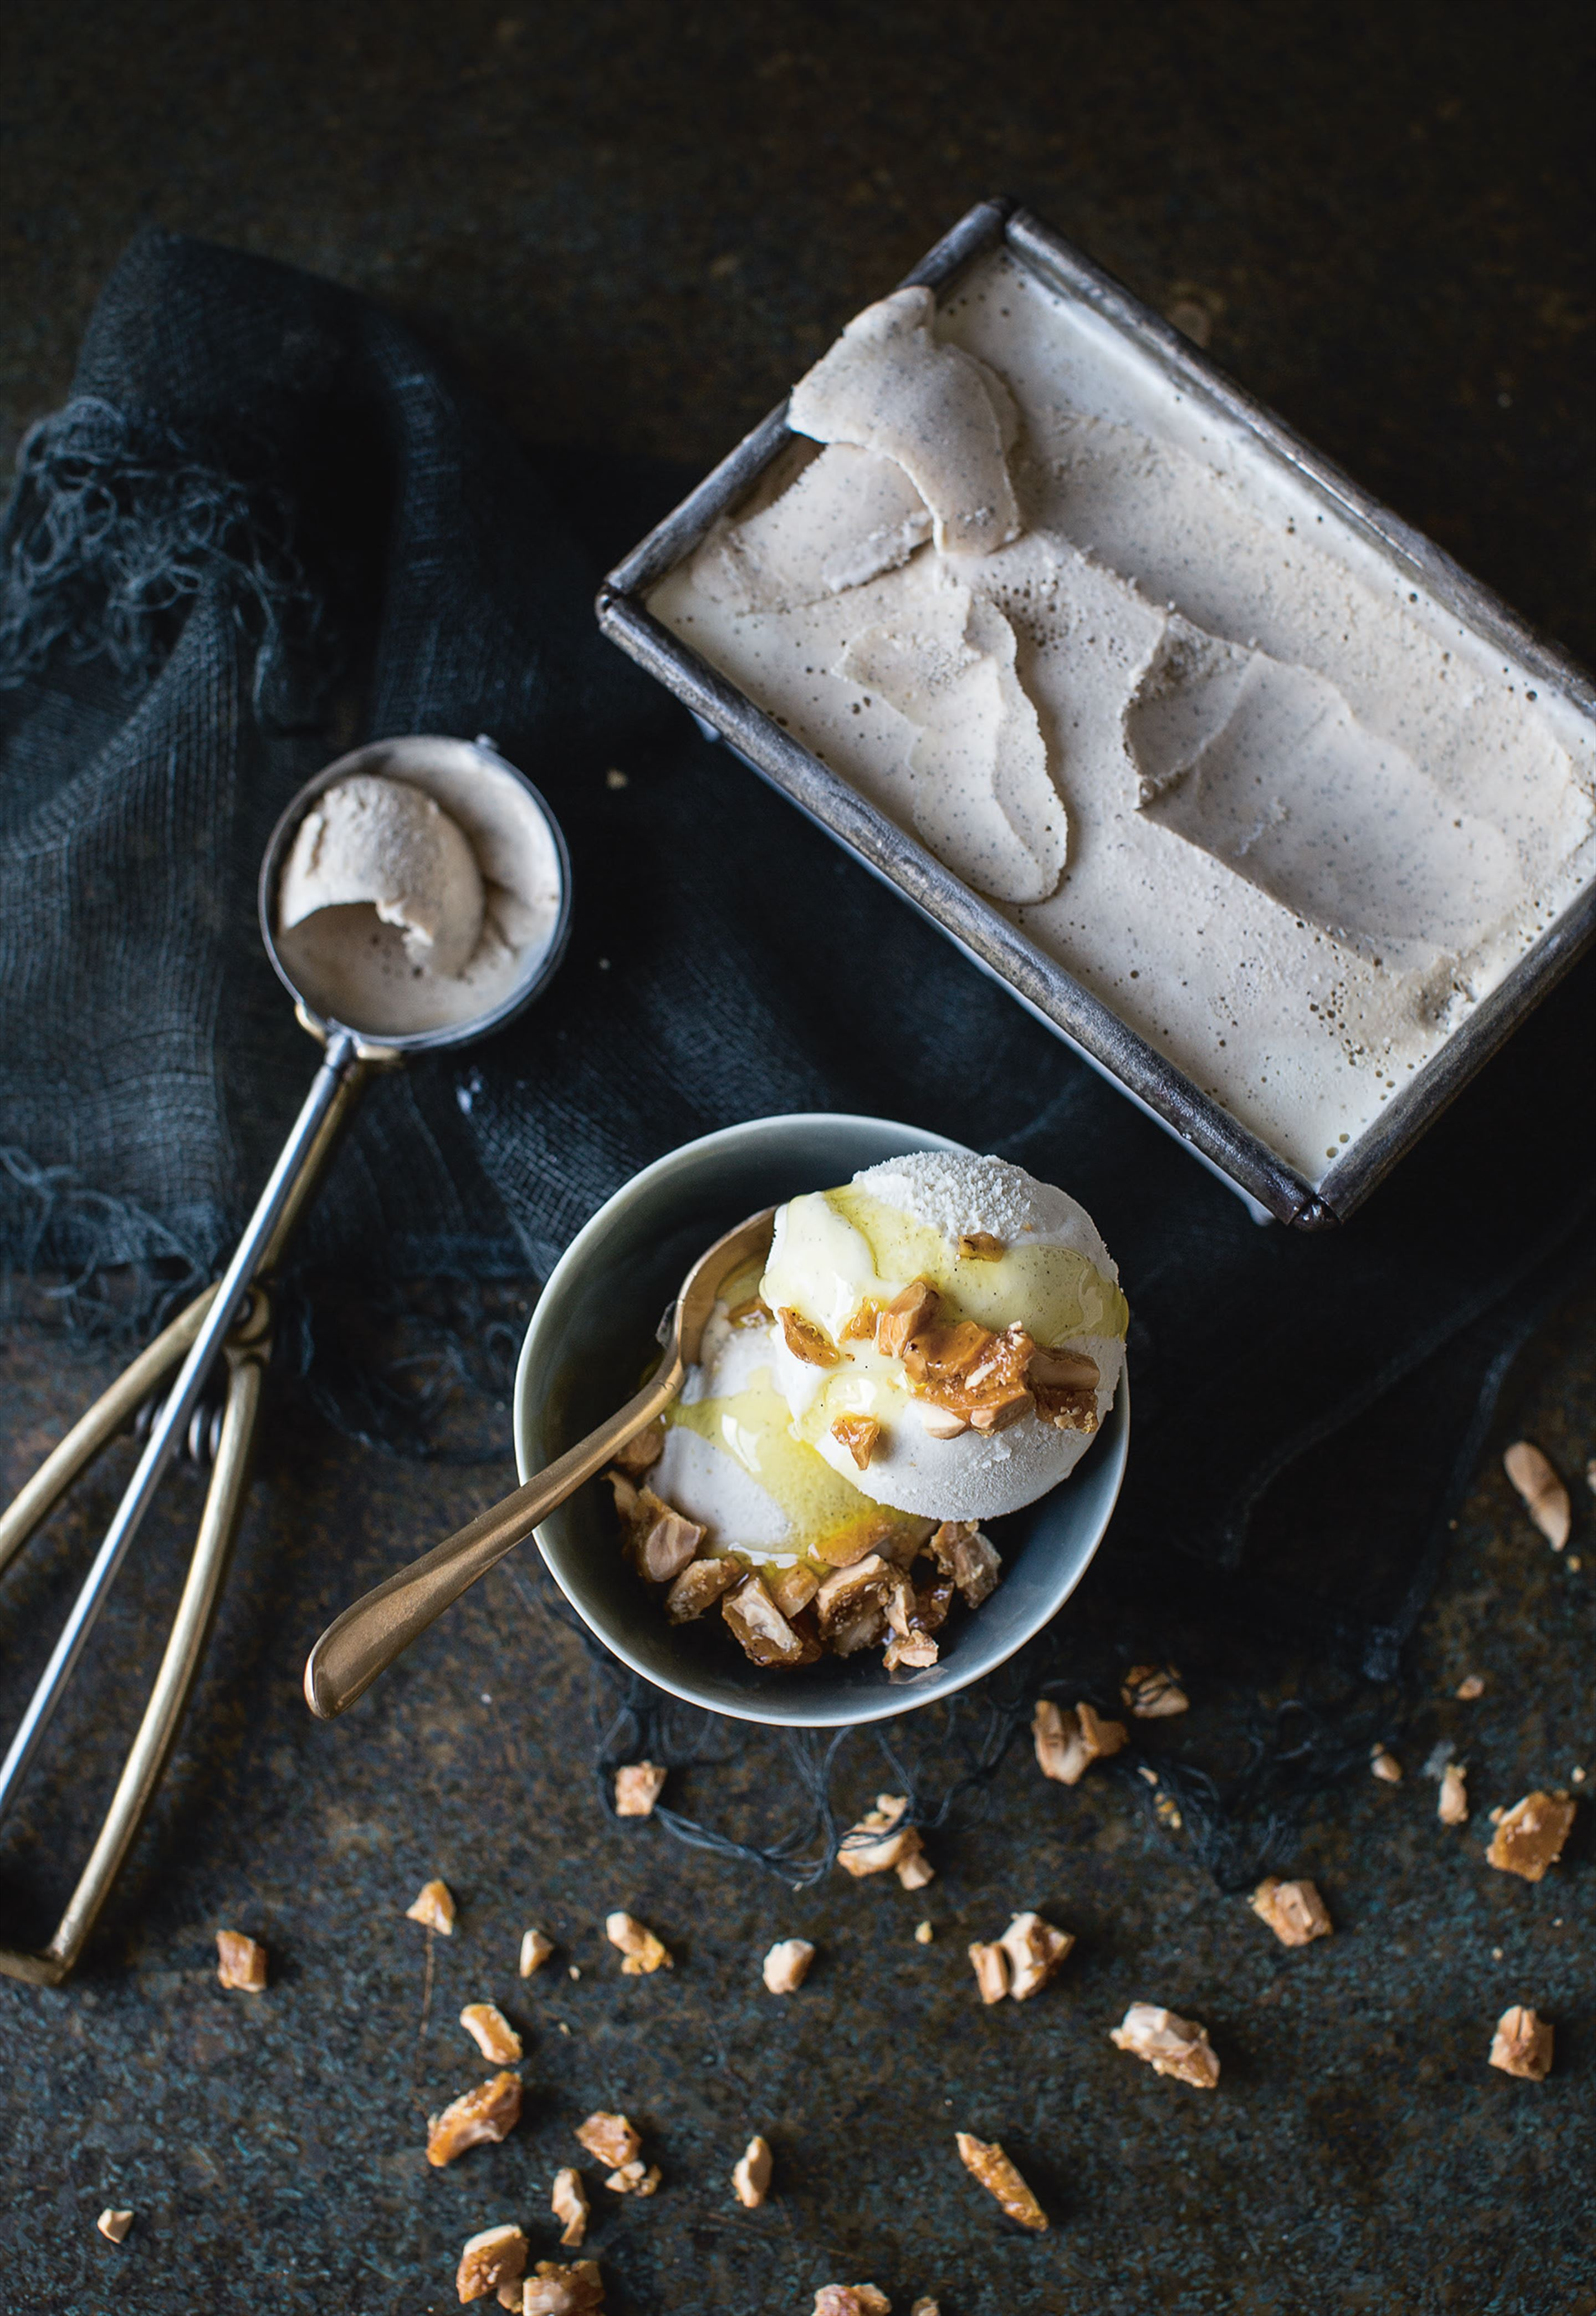 Vanilla ice-cream with olive oil